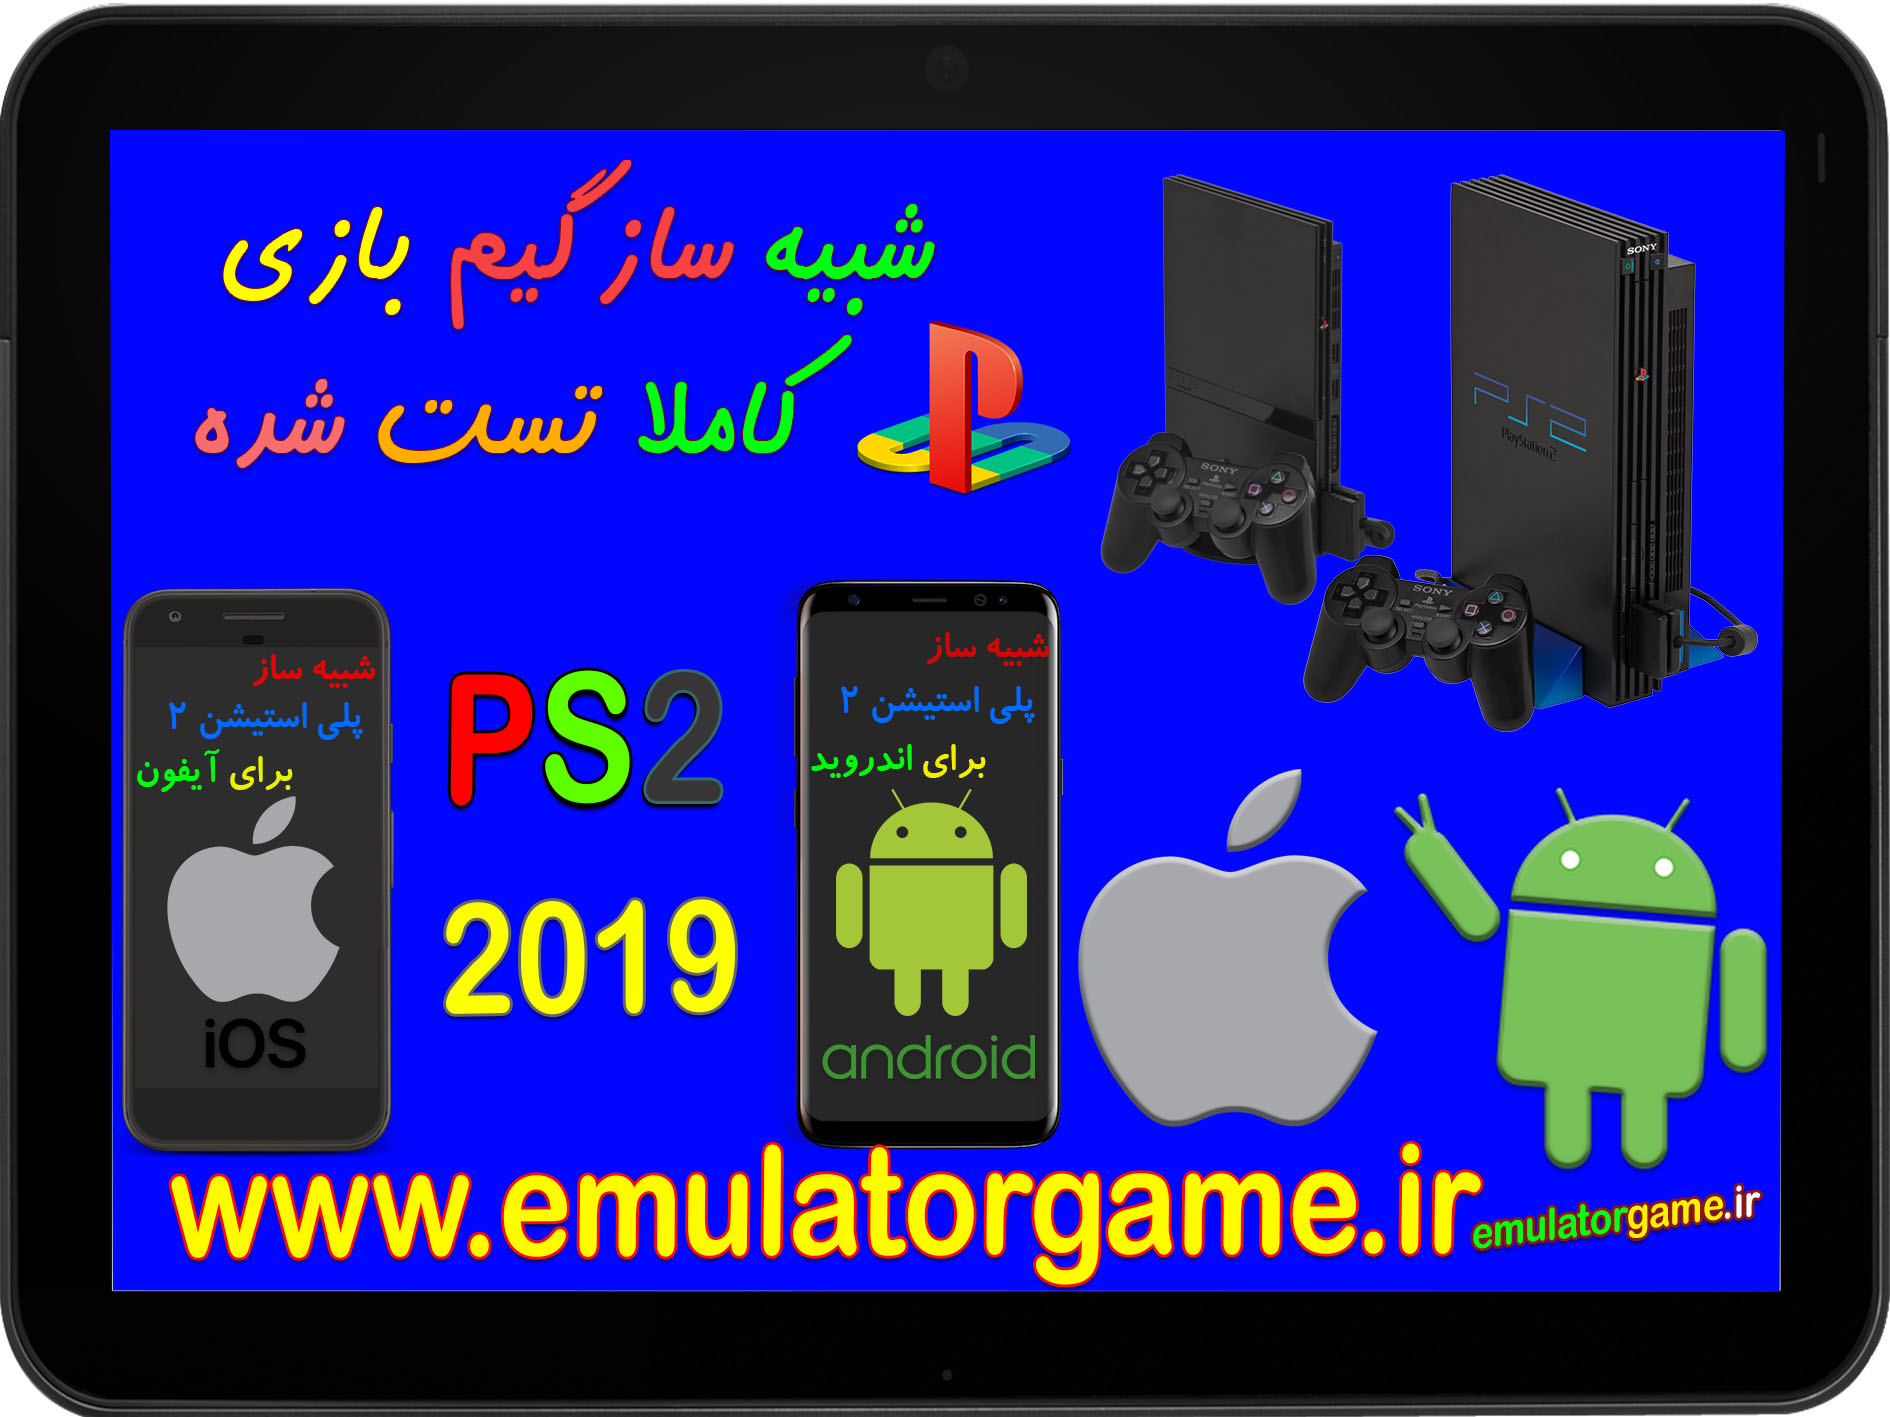 android ps2 2019